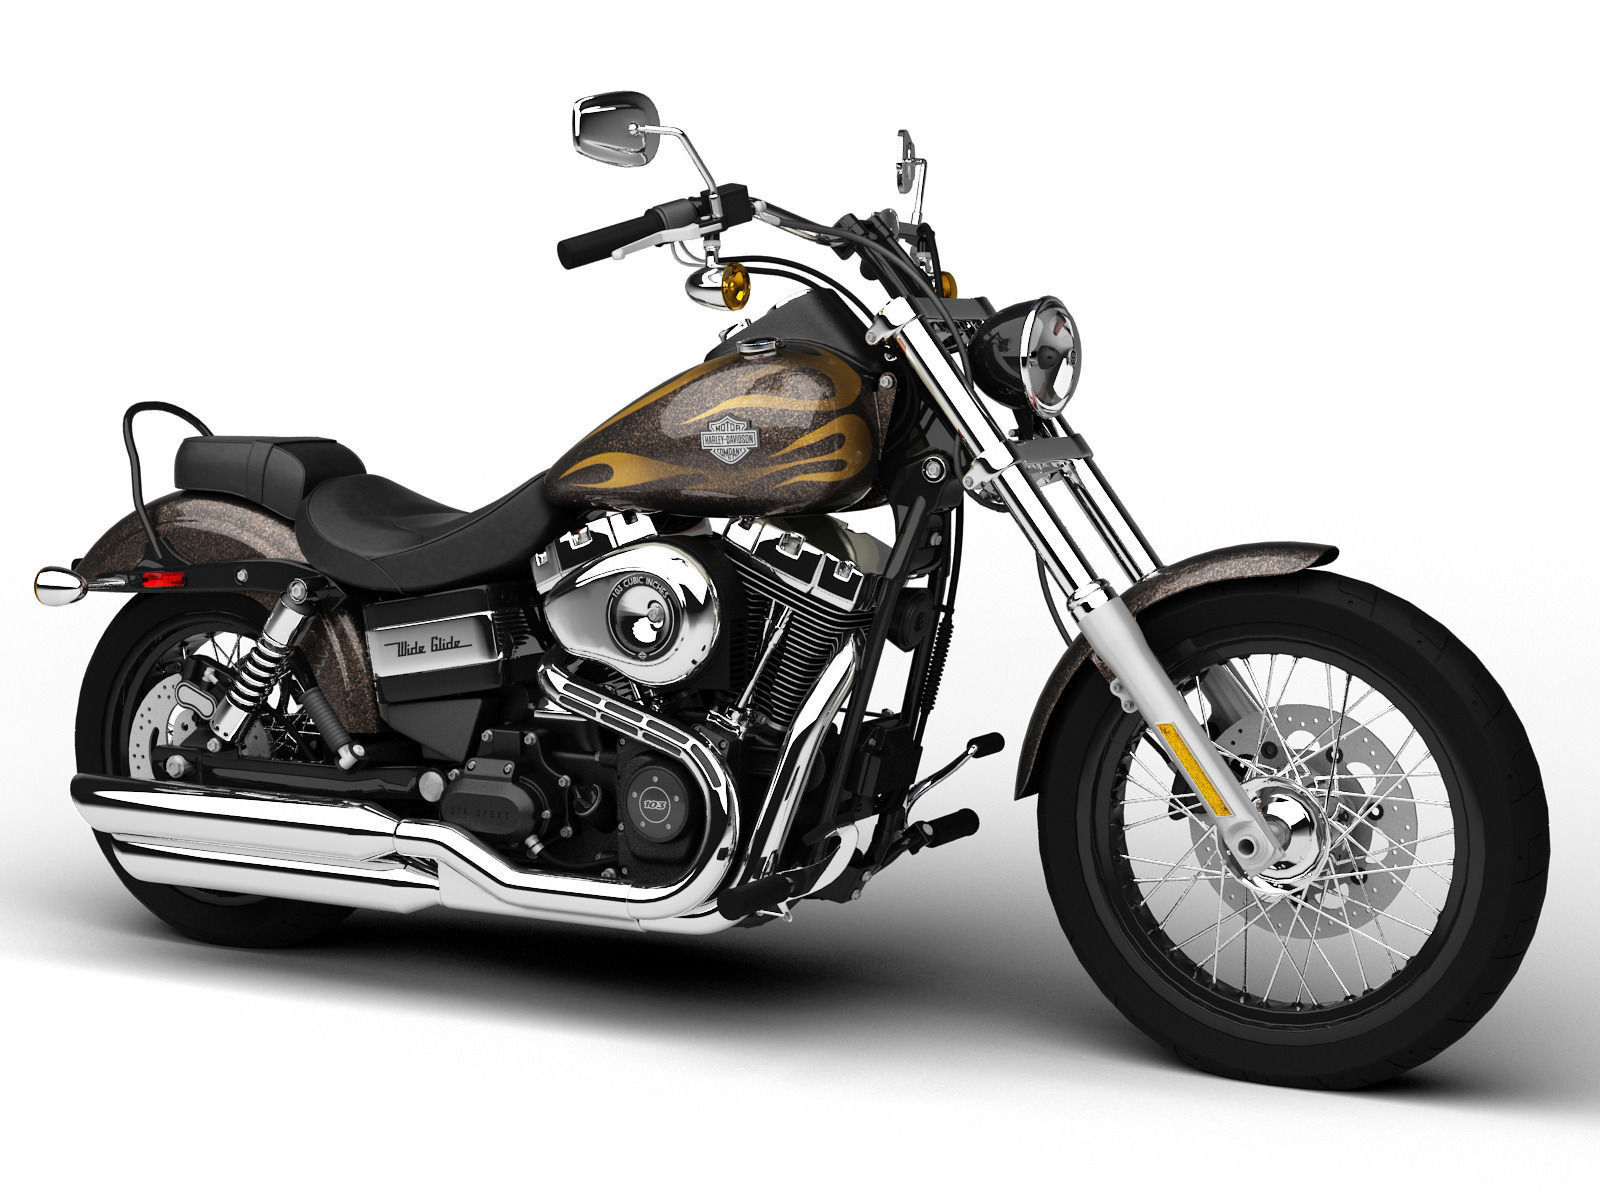 harley davidson fxdwg dyna wide glide 2015 3d model max. Black Bedroom Furniture Sets. Home Design Ideas